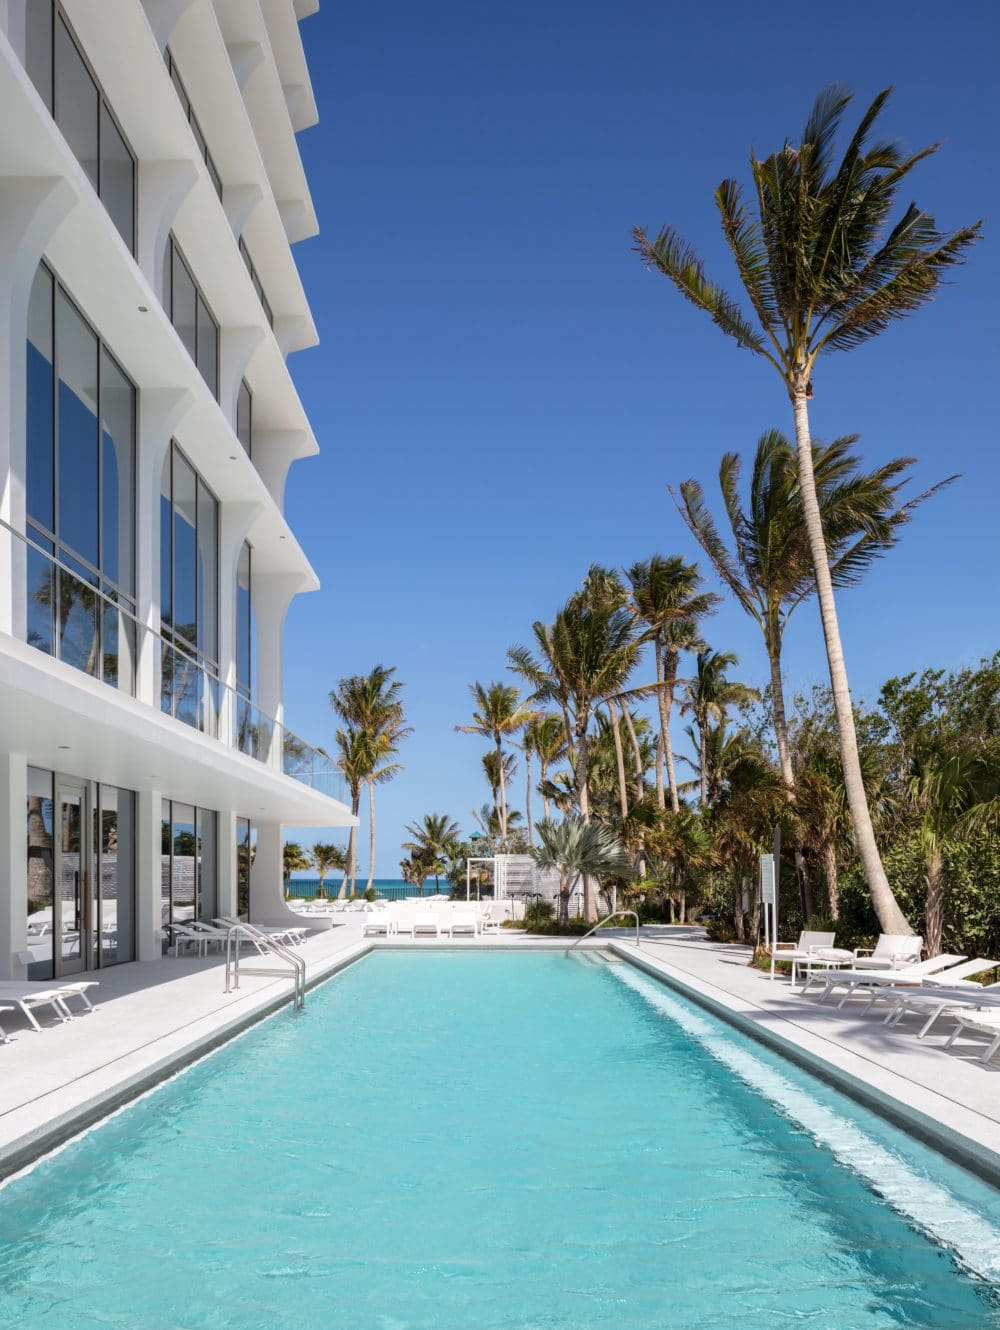 Exterior view of Jade Signature condominiums outdoor pool with oceanfront view. Has lounge chairs and palm trees.